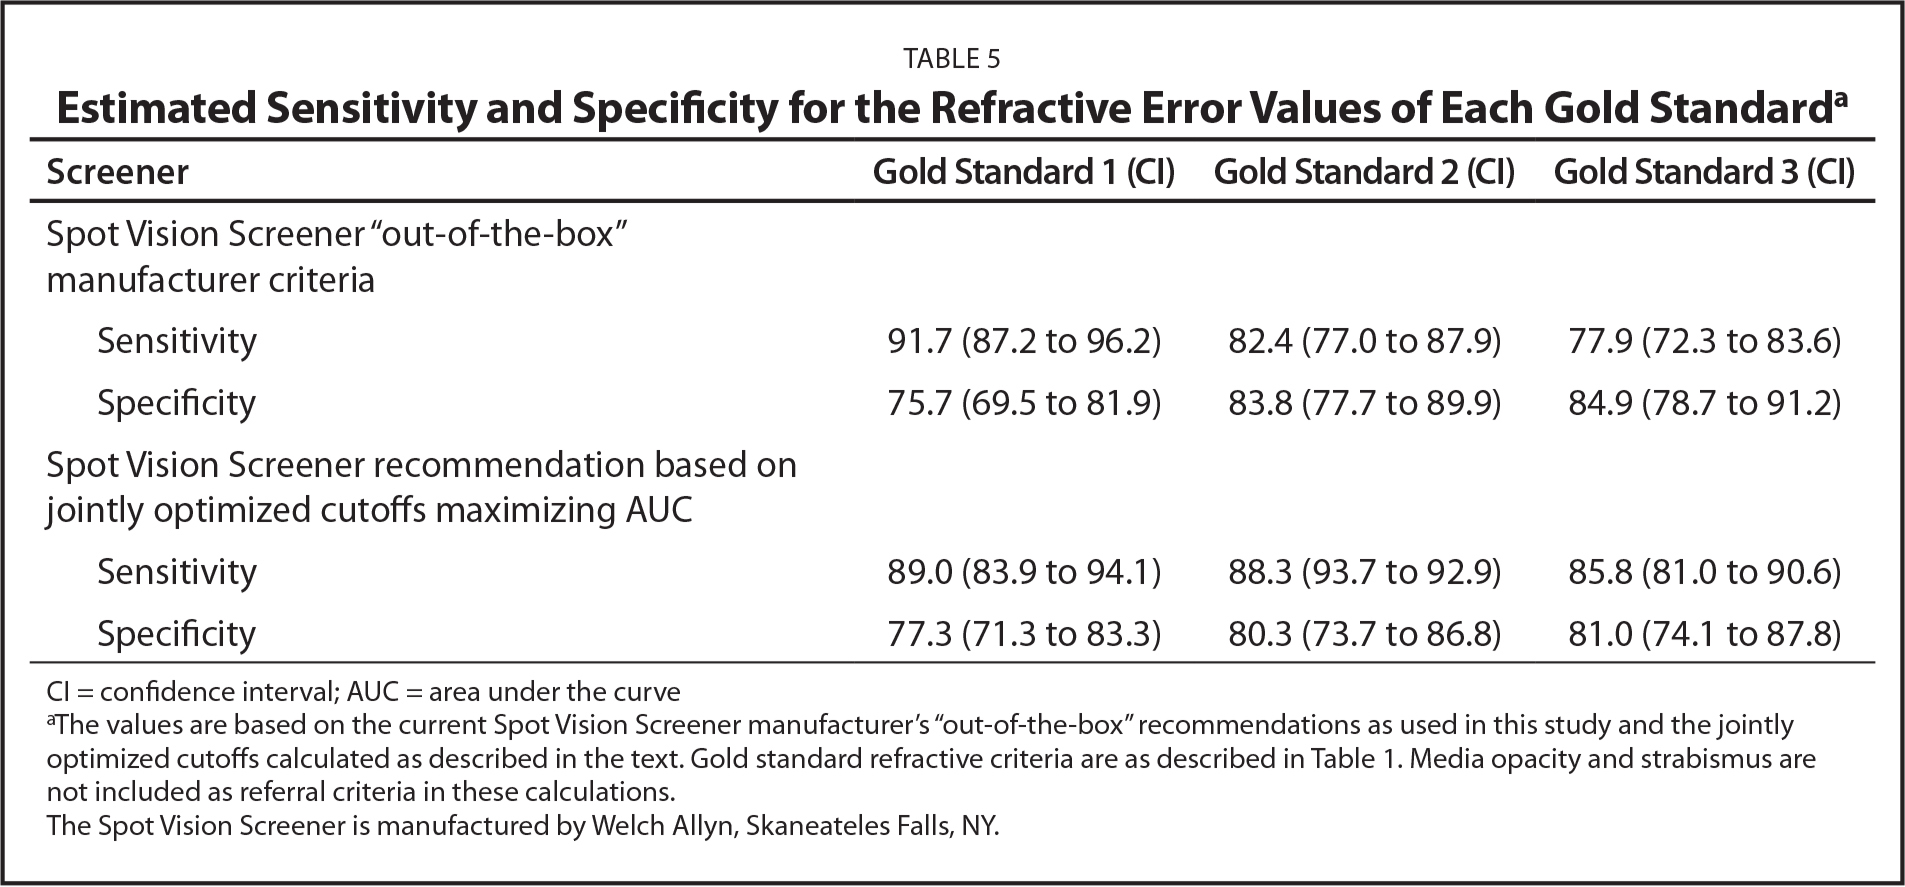 Estimated Sensitivity and Specificity for the Refractive Error Values of Each Gold Standarda